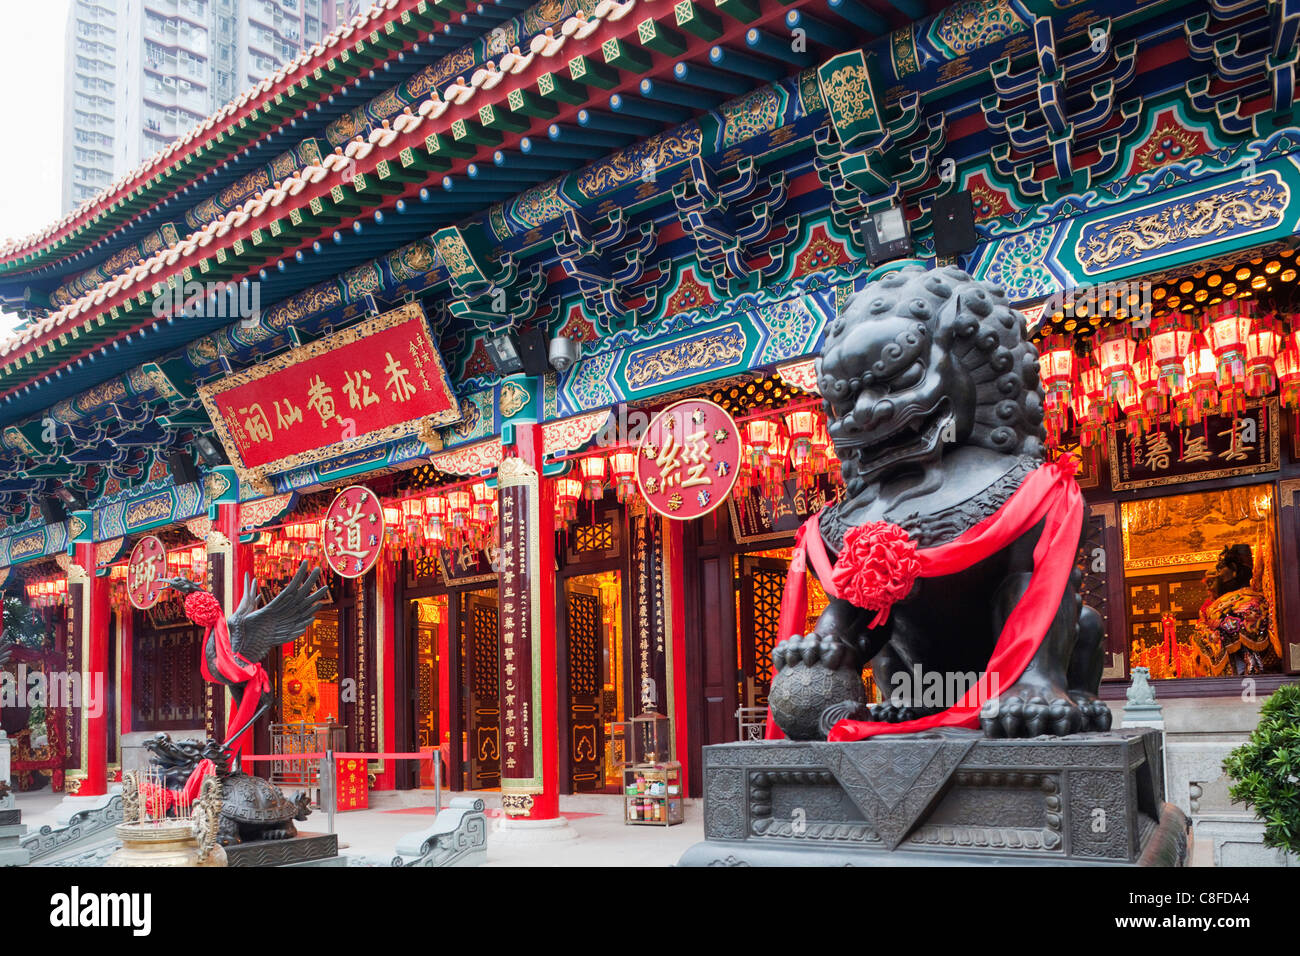 thailand and hong kong religious differences Religion in hong kong three religions, or some elements from each, define the religious life of most people in hong kong these religions are buddhism, from india, and taoism and confucianism from china.